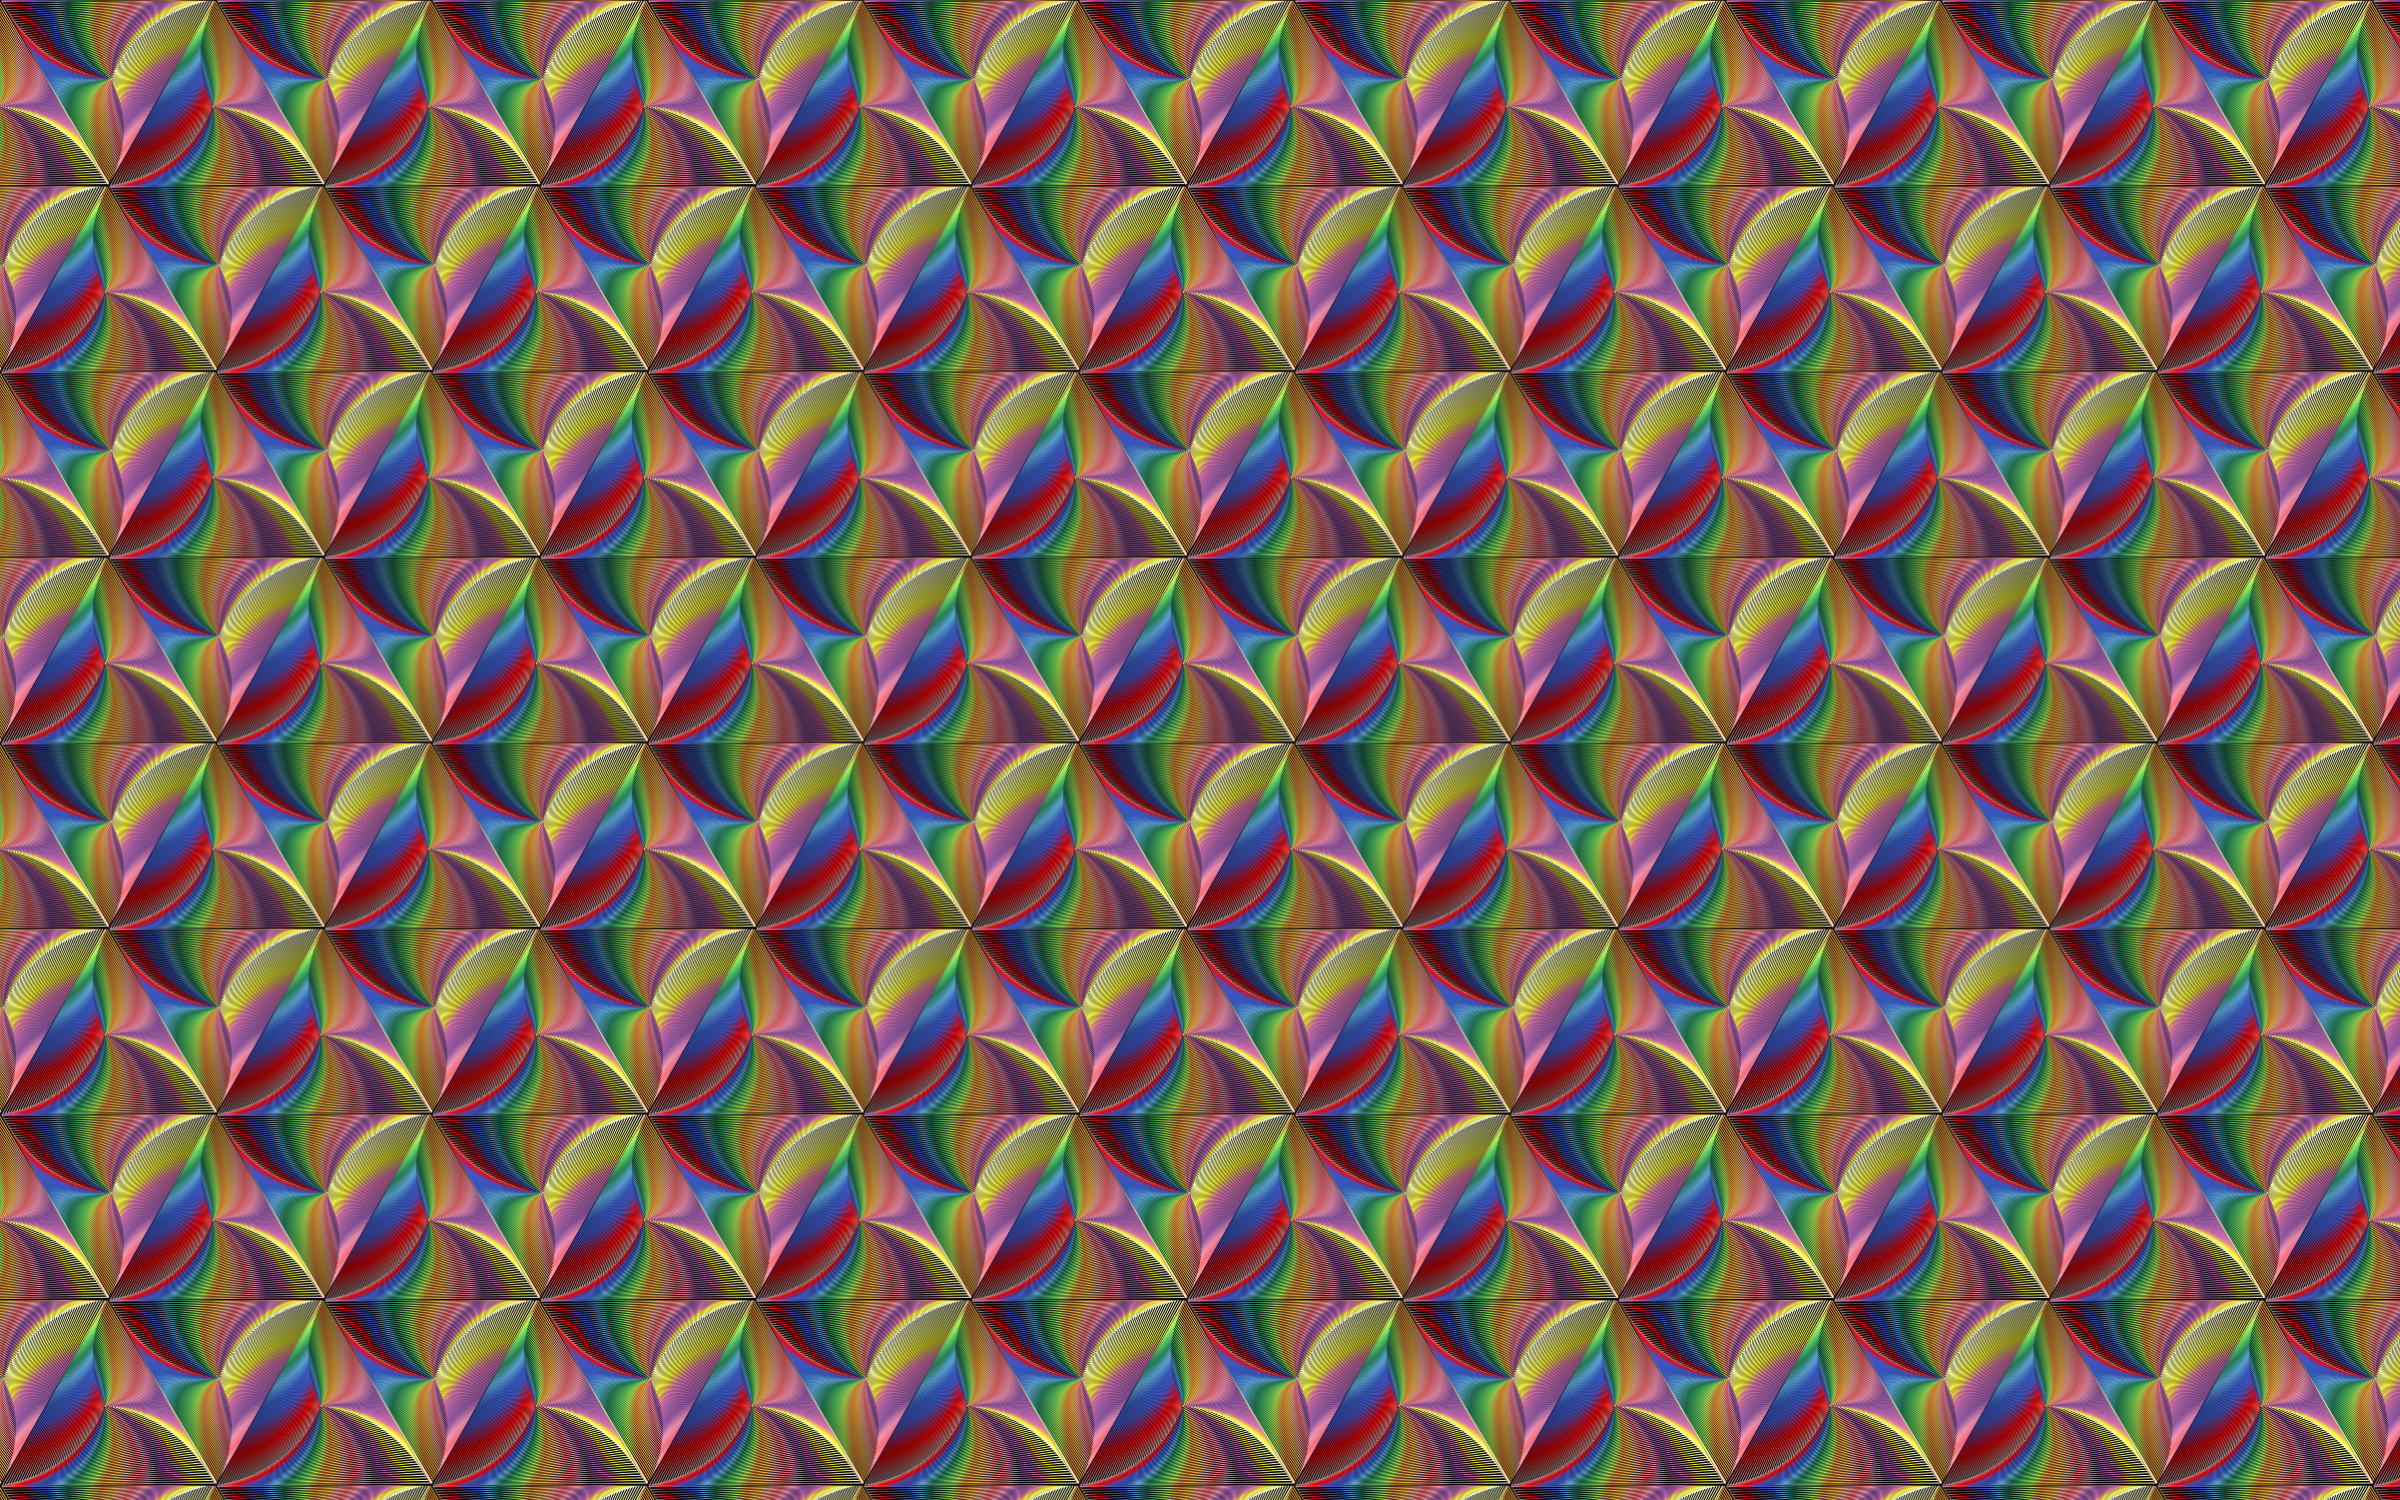 Seamless Prismatic Line Art Pattern 2 by GDJ